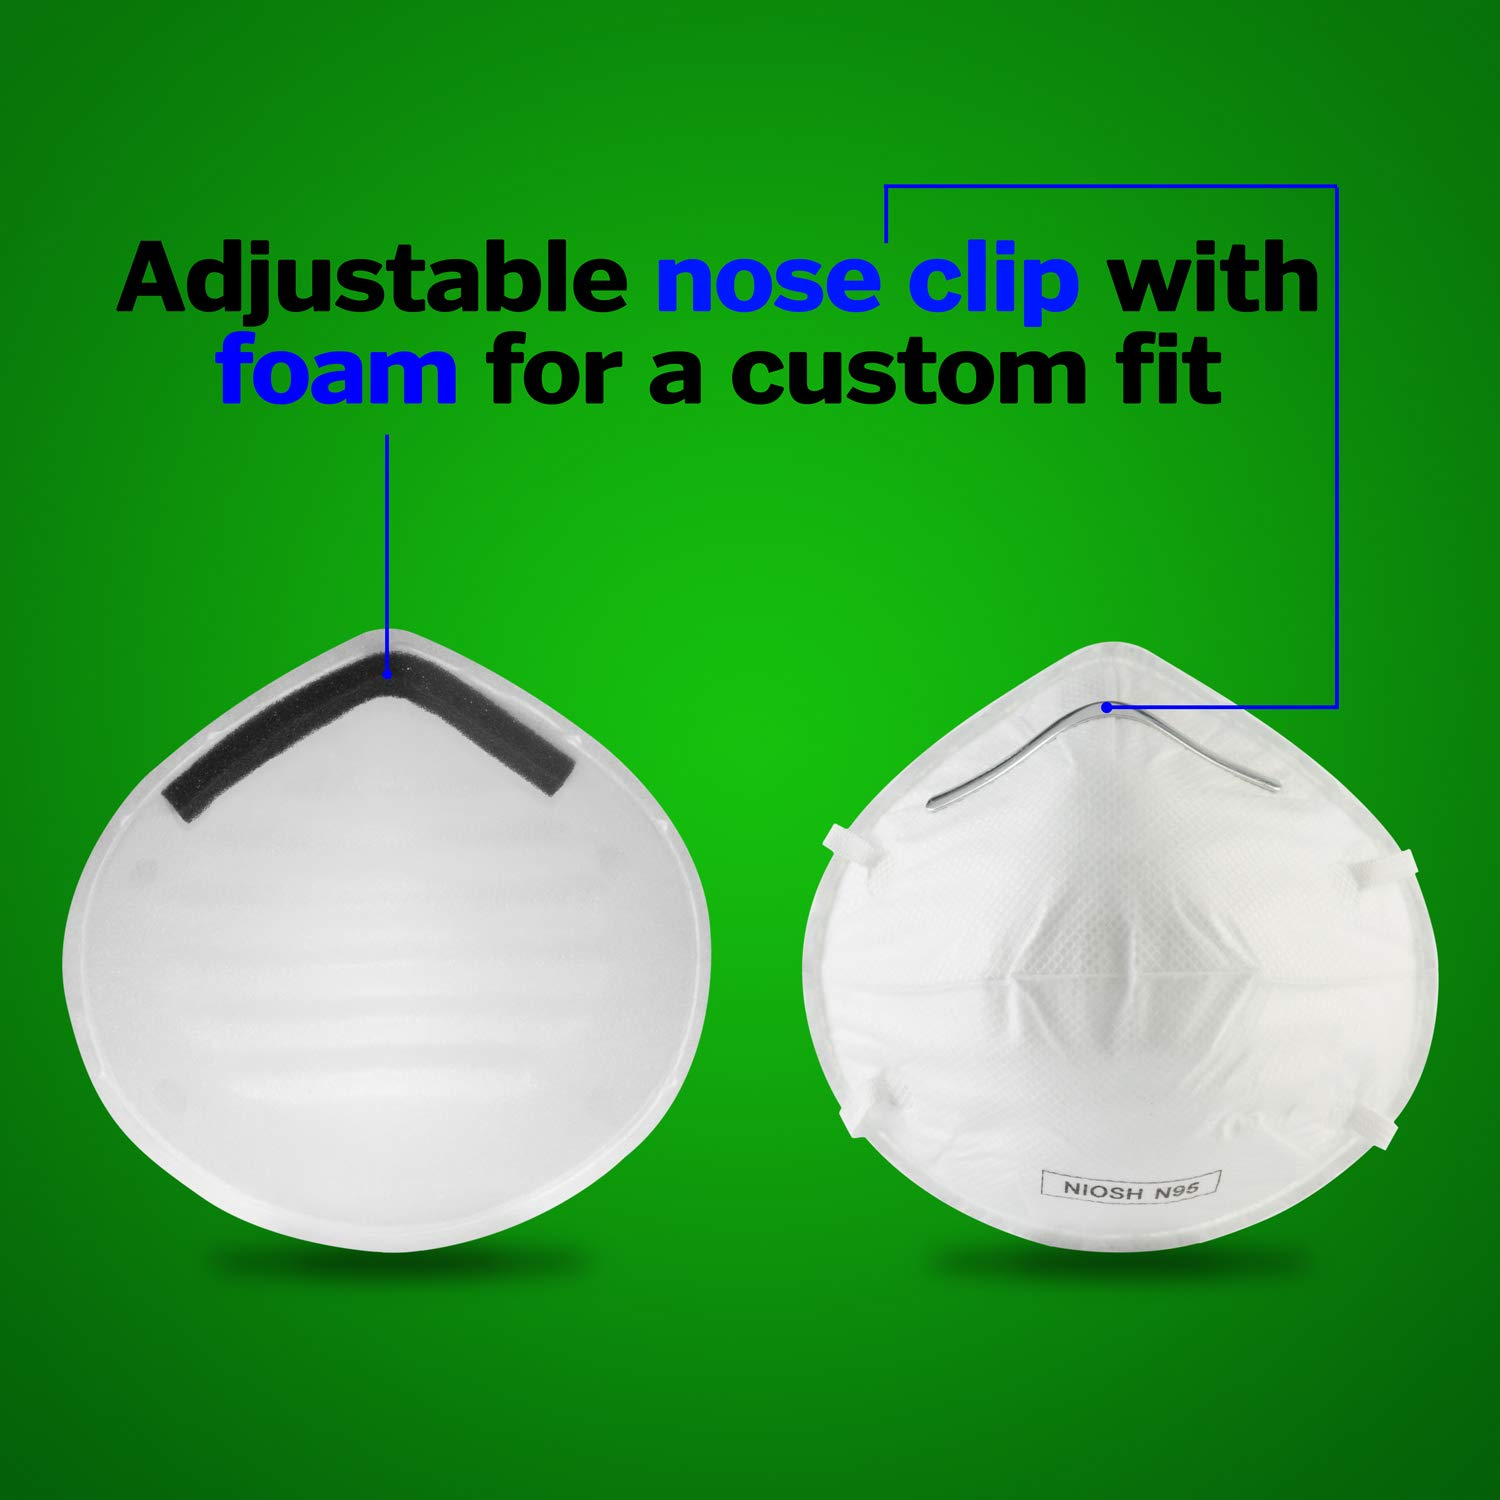 Disposable Dust Masks respirators for face - NIOSH Certified - Safety N95 Respirator Mask (20 pack) for Cleaning, Anti Pollution, Surgical operations & more by WeBreathe (Image #4)